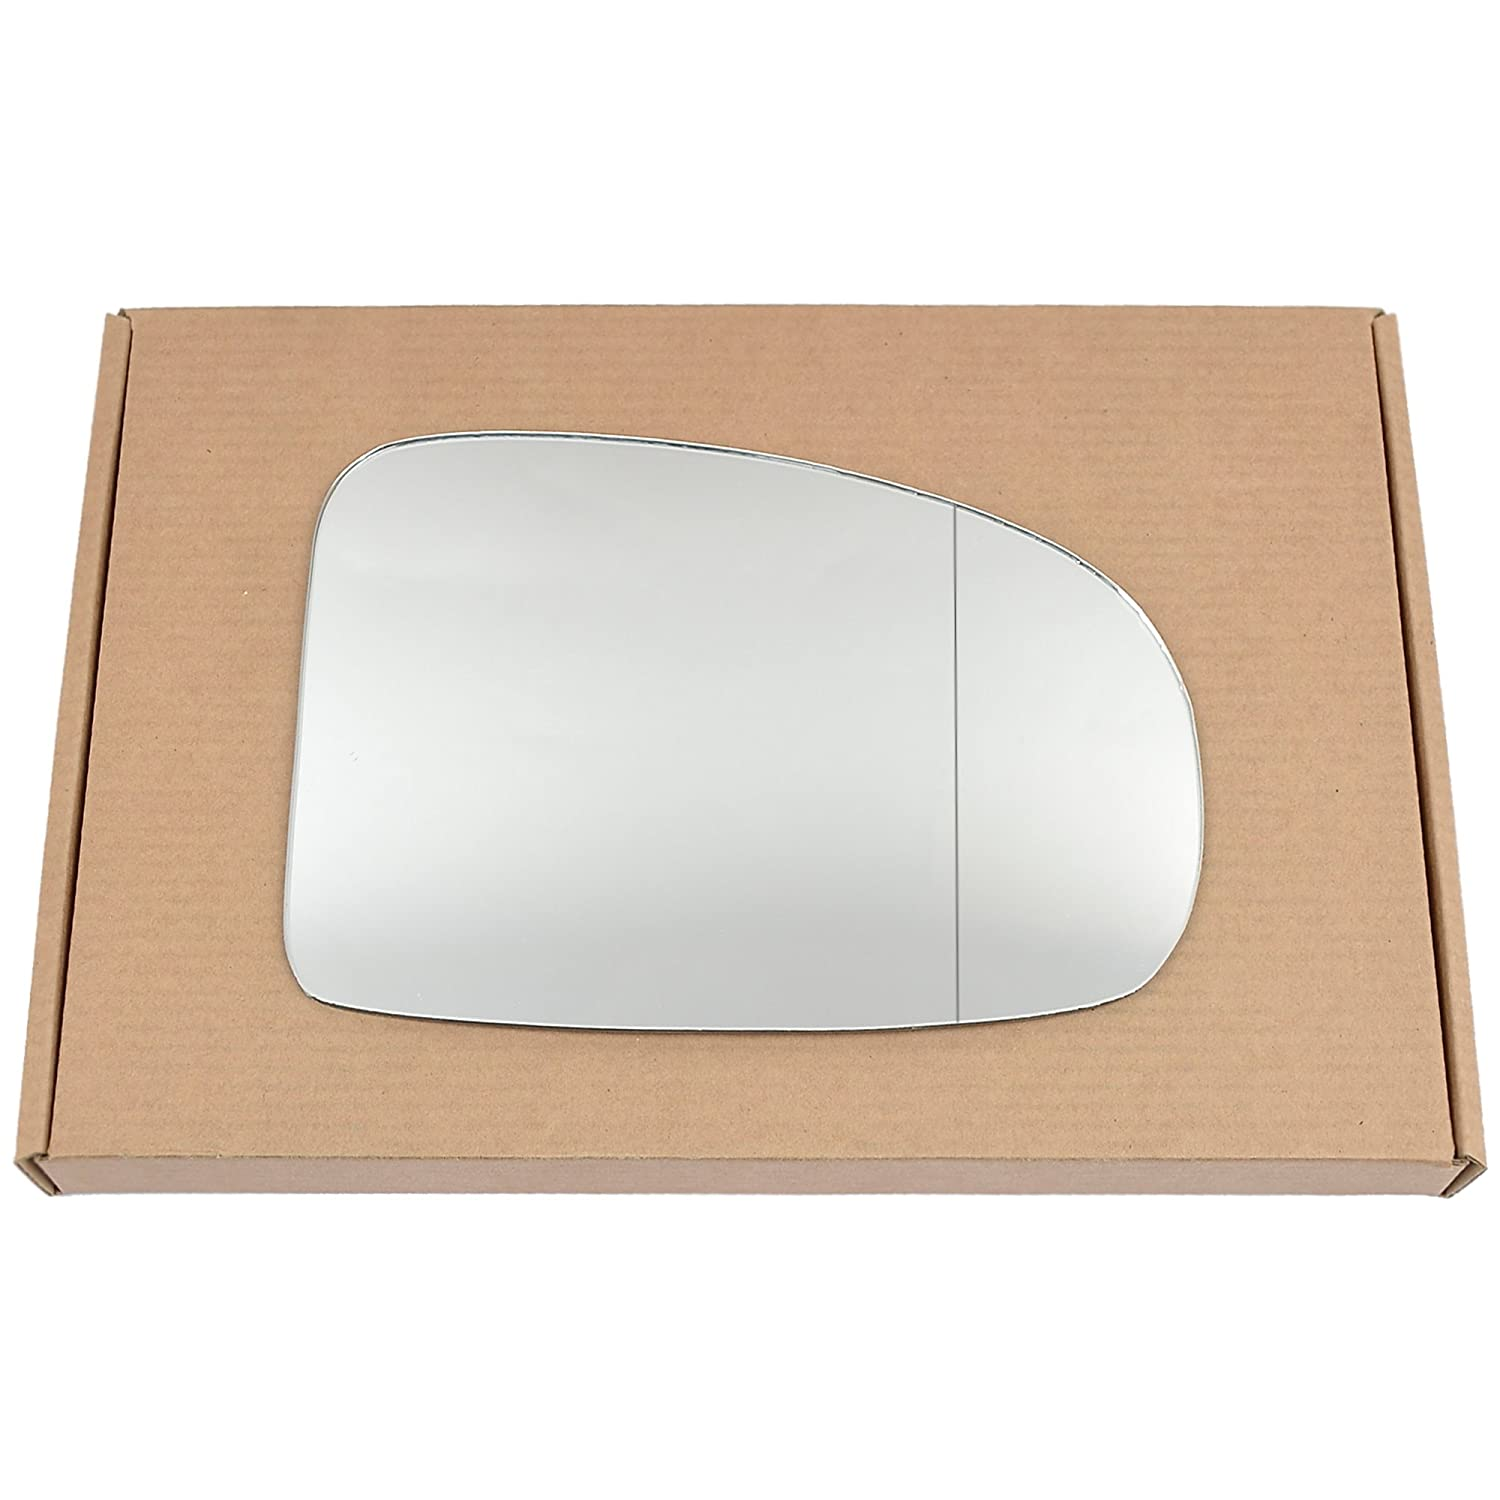 Right Off Driver Side Blind Spot Stick On Mirror glass #ToPrius09-15-RWA